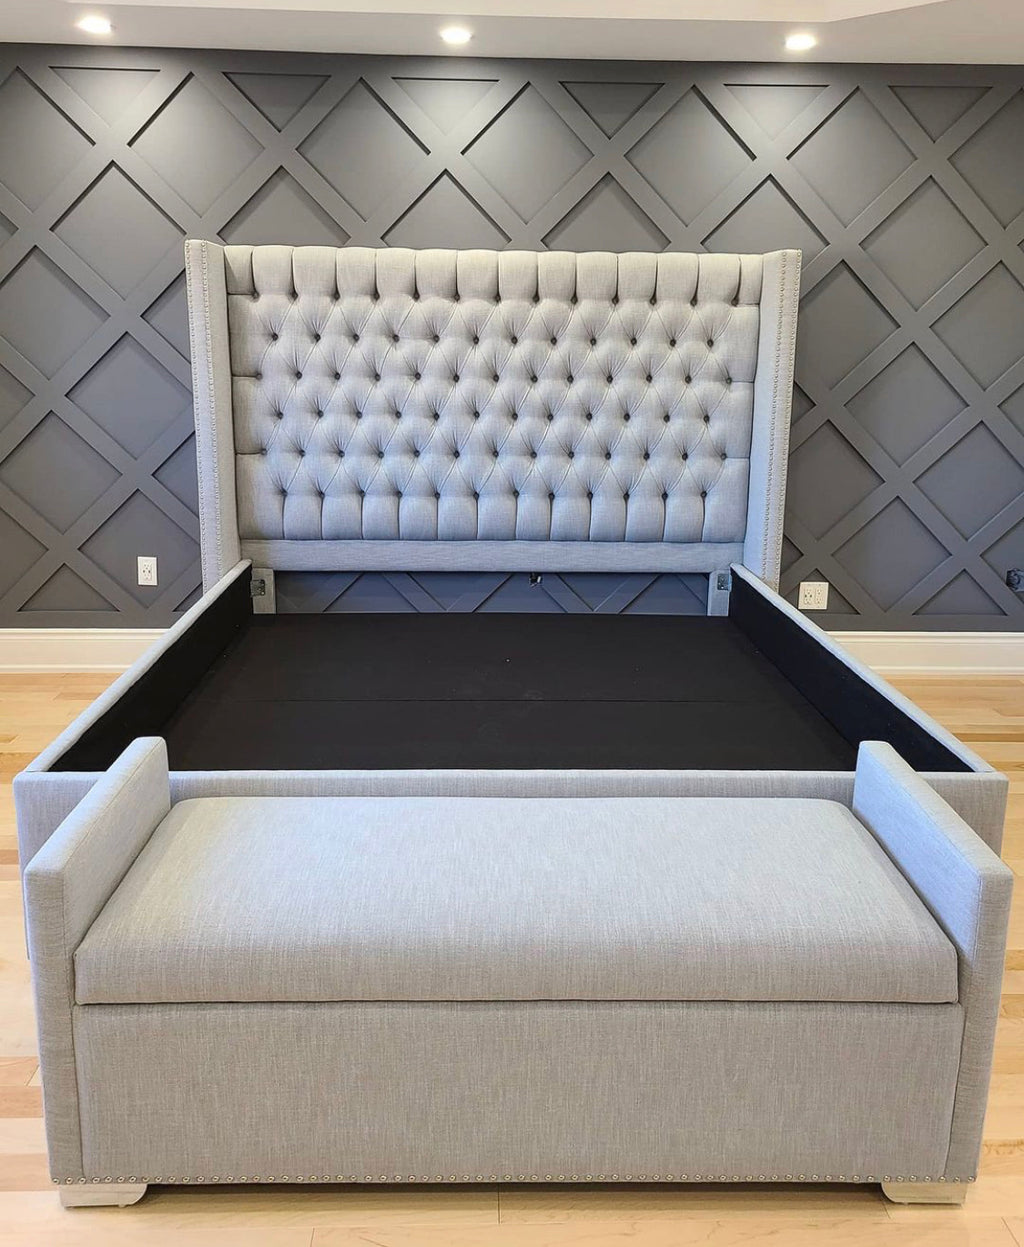 Dior Custom Tall Wingback Bed & Matching Storage Bench (Optional)